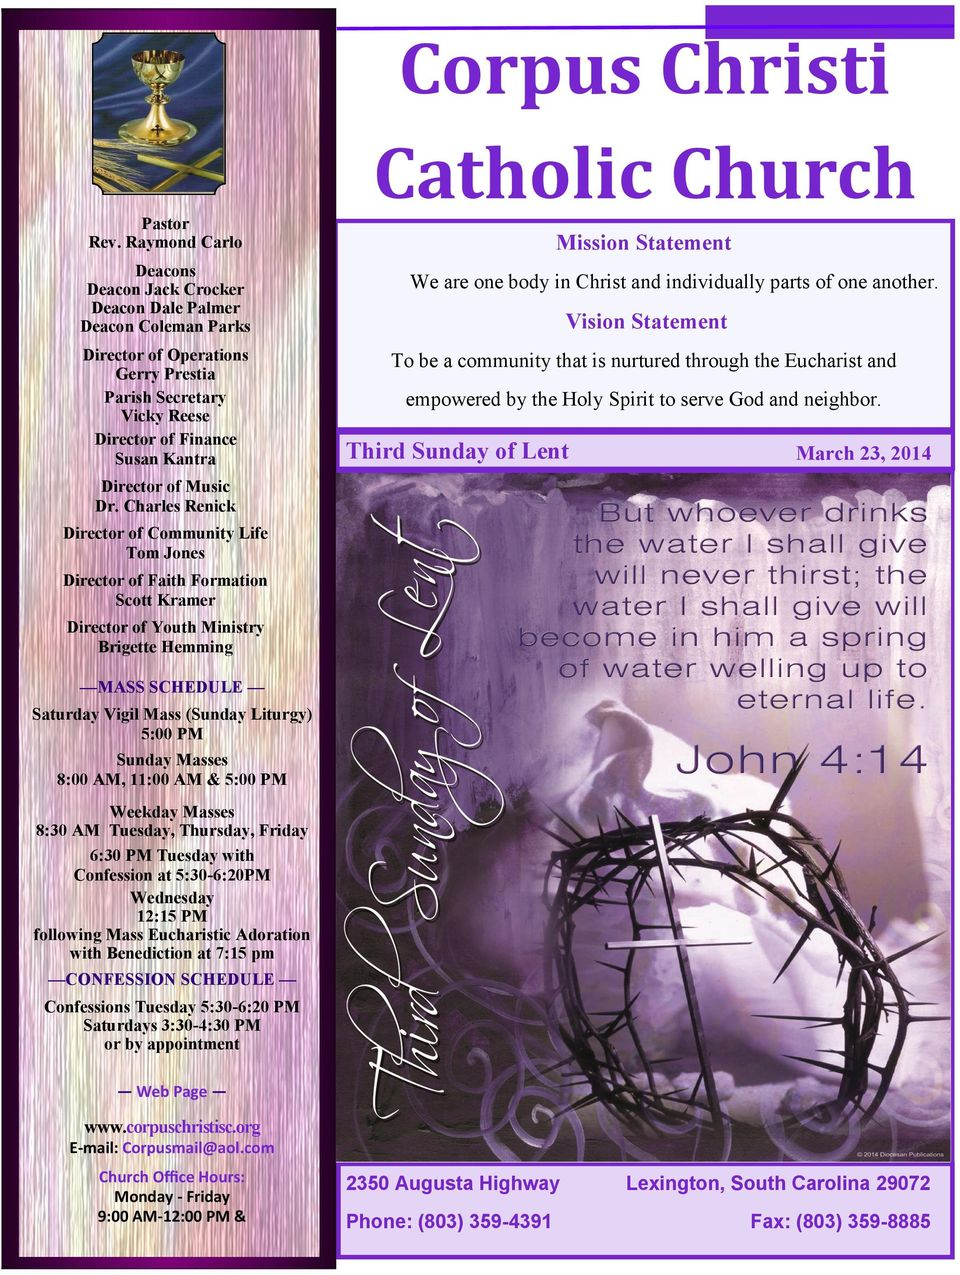 Catholic Church Mission Statement We are one body in Christ and individually parts of one another.